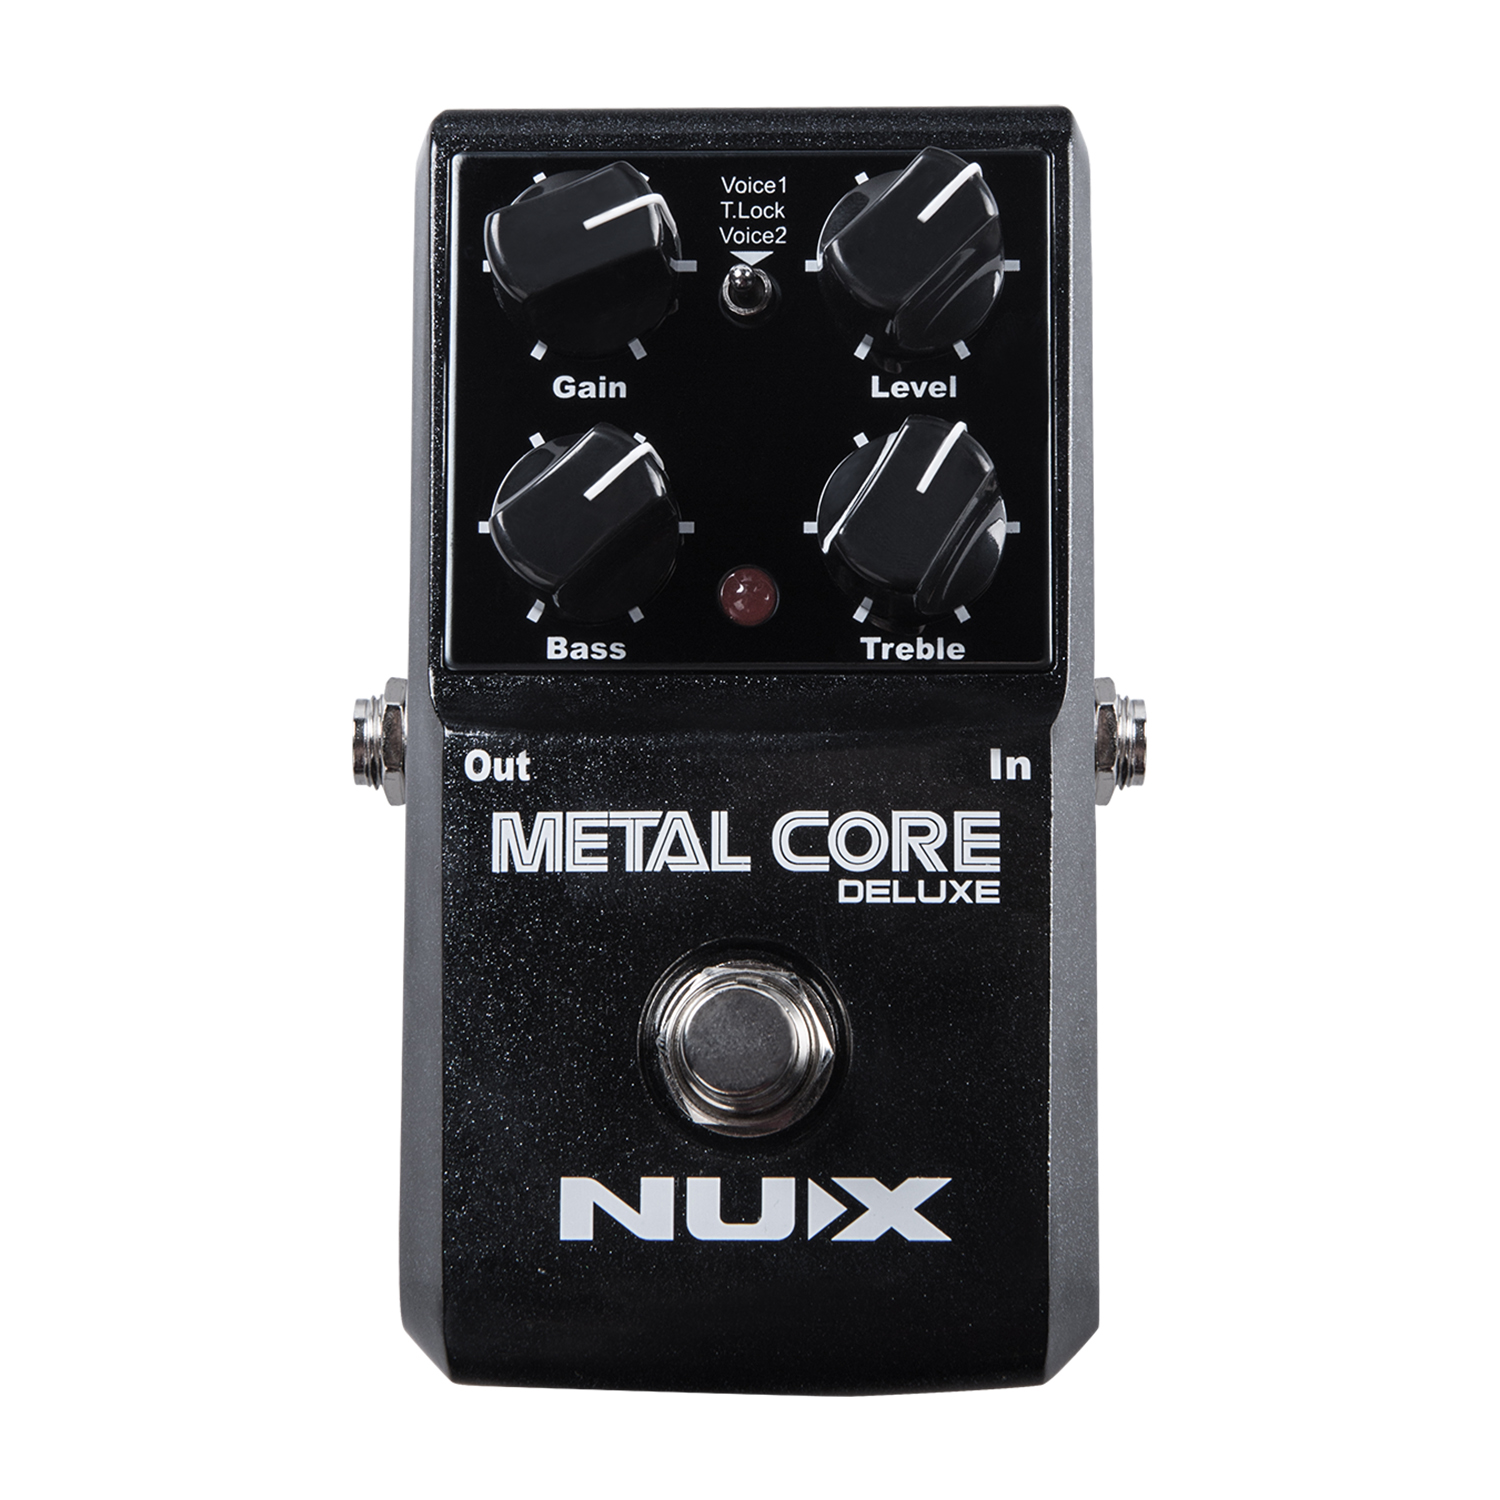 NUX Metal Core Deluxe Distortion Guitar Effect Pedal 2 Distortion Voices Tone Lock True Bypass 2-Band EQ Built-in Noise Gate steve cockram 5 voices